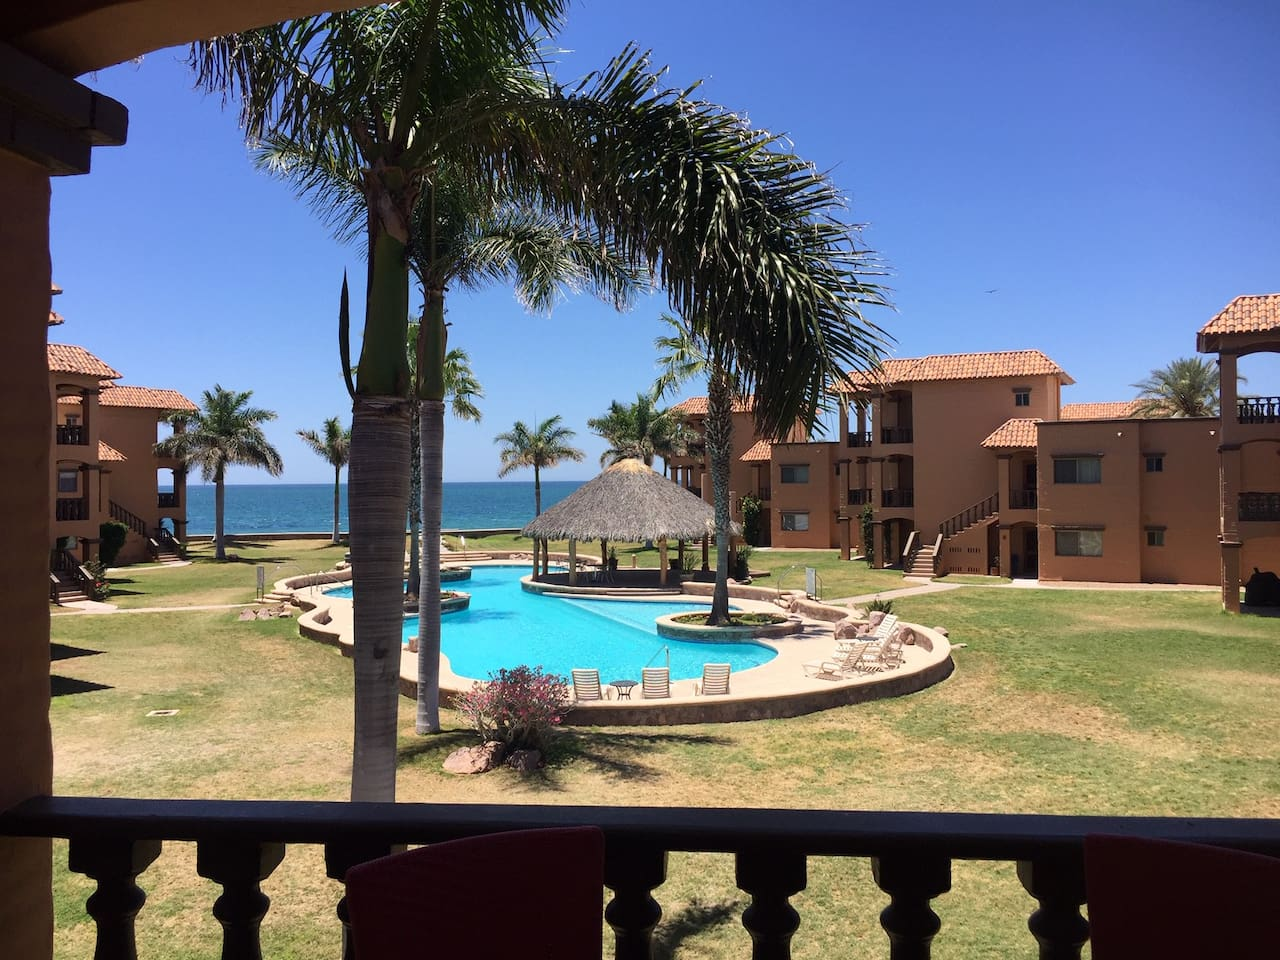 Lovely view of the pool and the Sea of Cortez from the balcony.  One of the best locations in Bahia Delfin